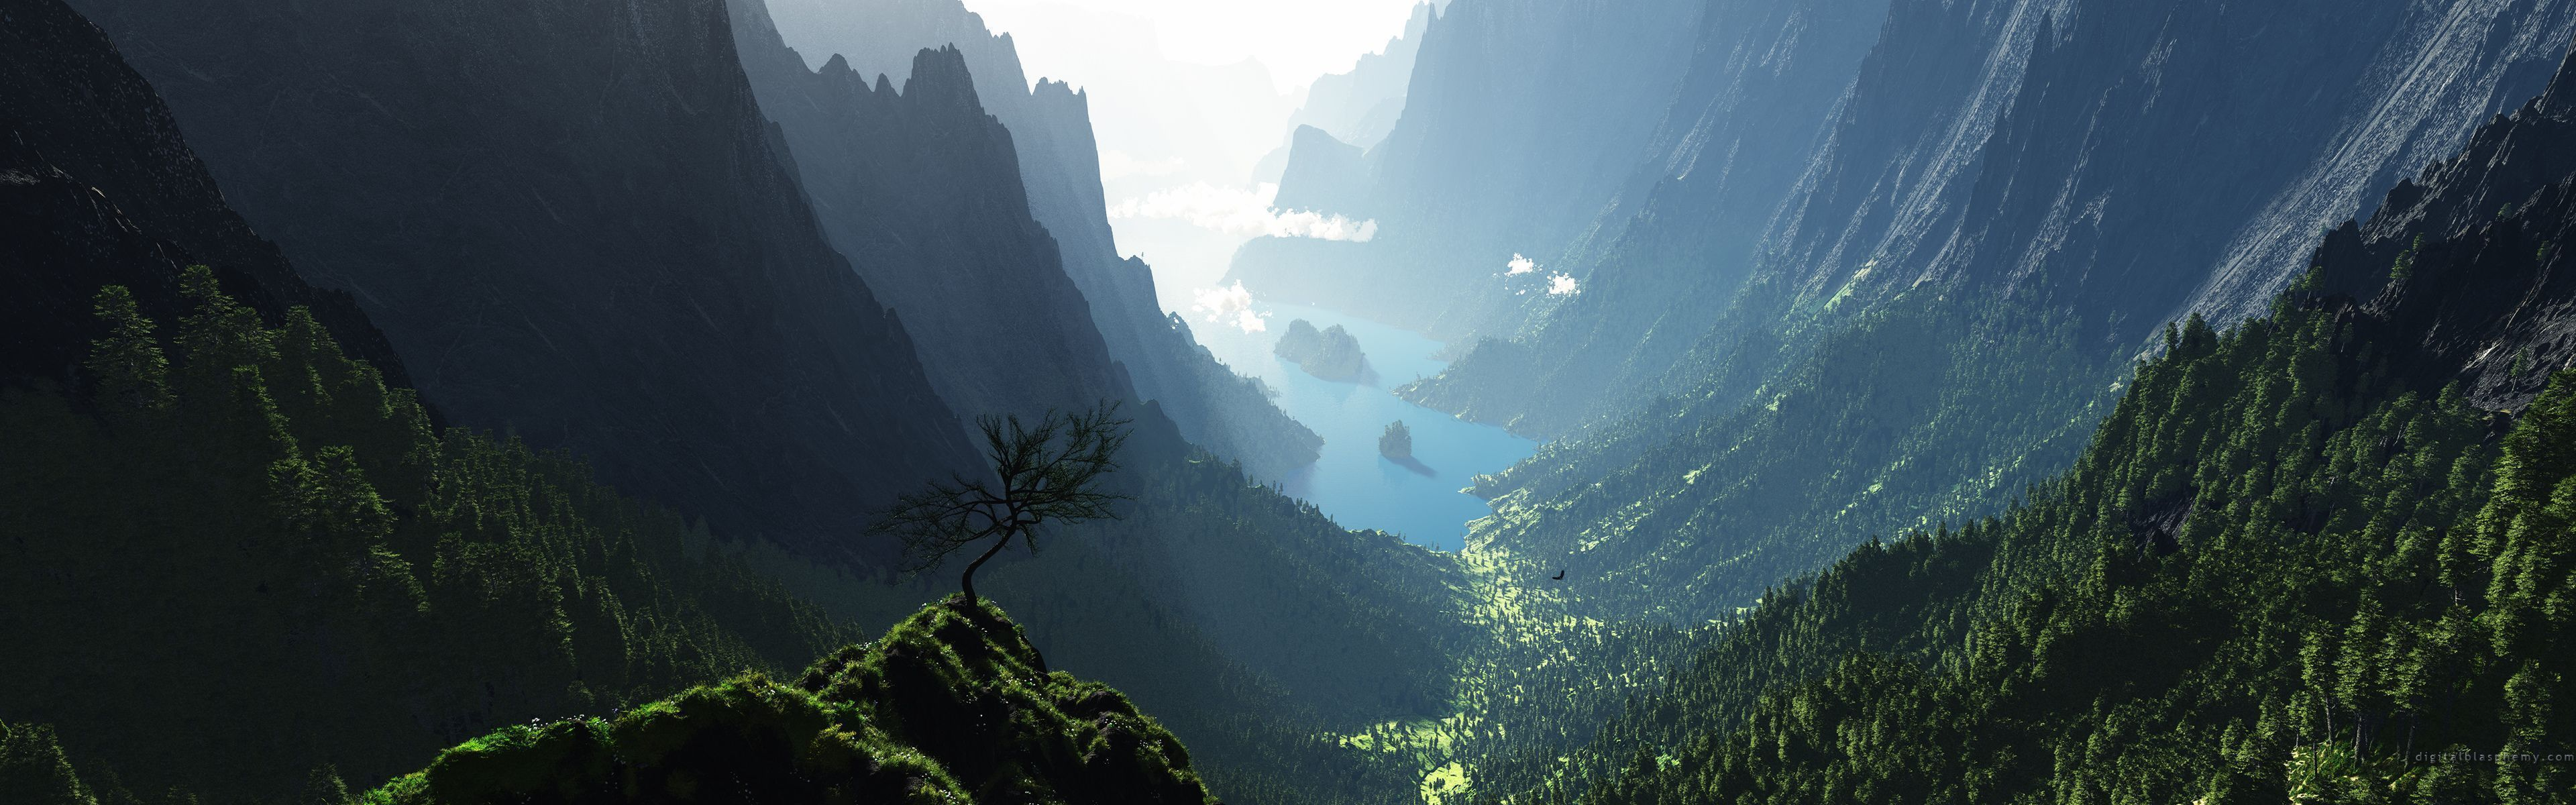 dual monitor wallpapers | Wallpapers | Pinterest | Wallpaper and ...